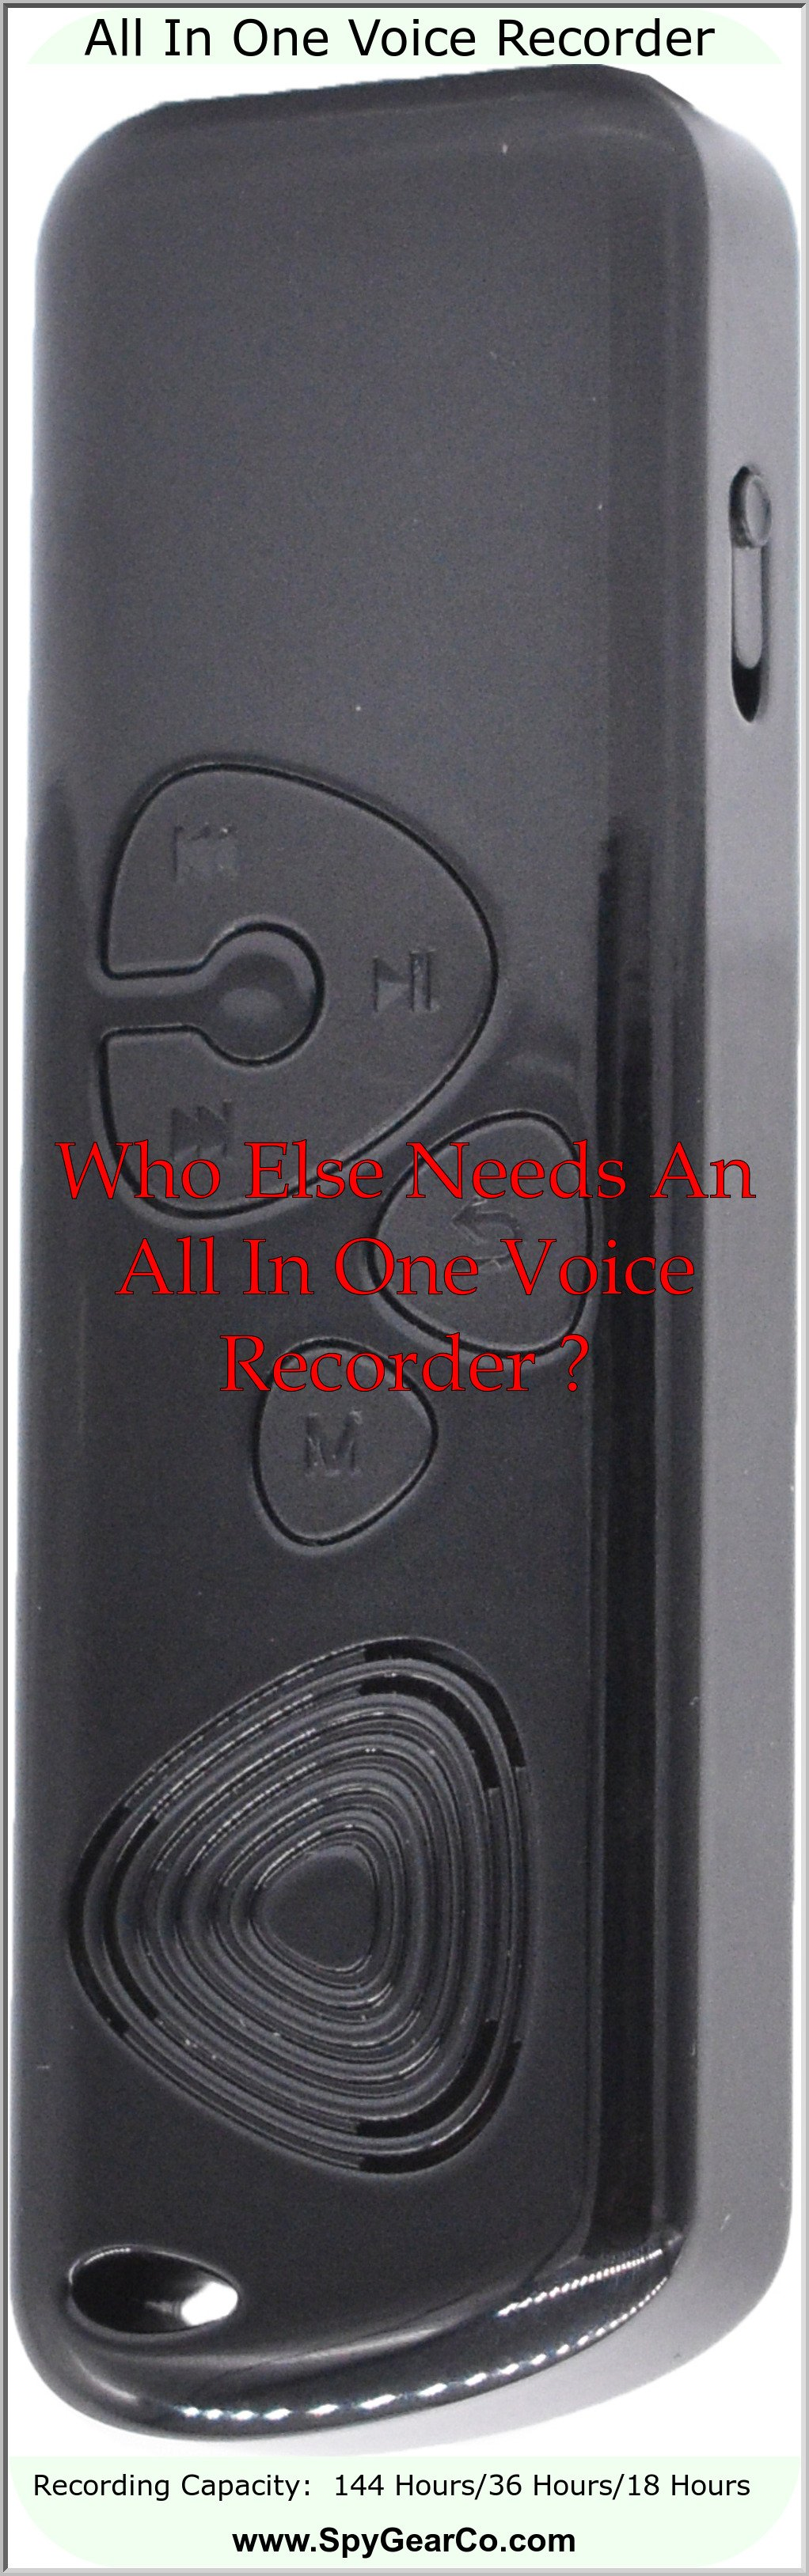 All In One Voice Recorder